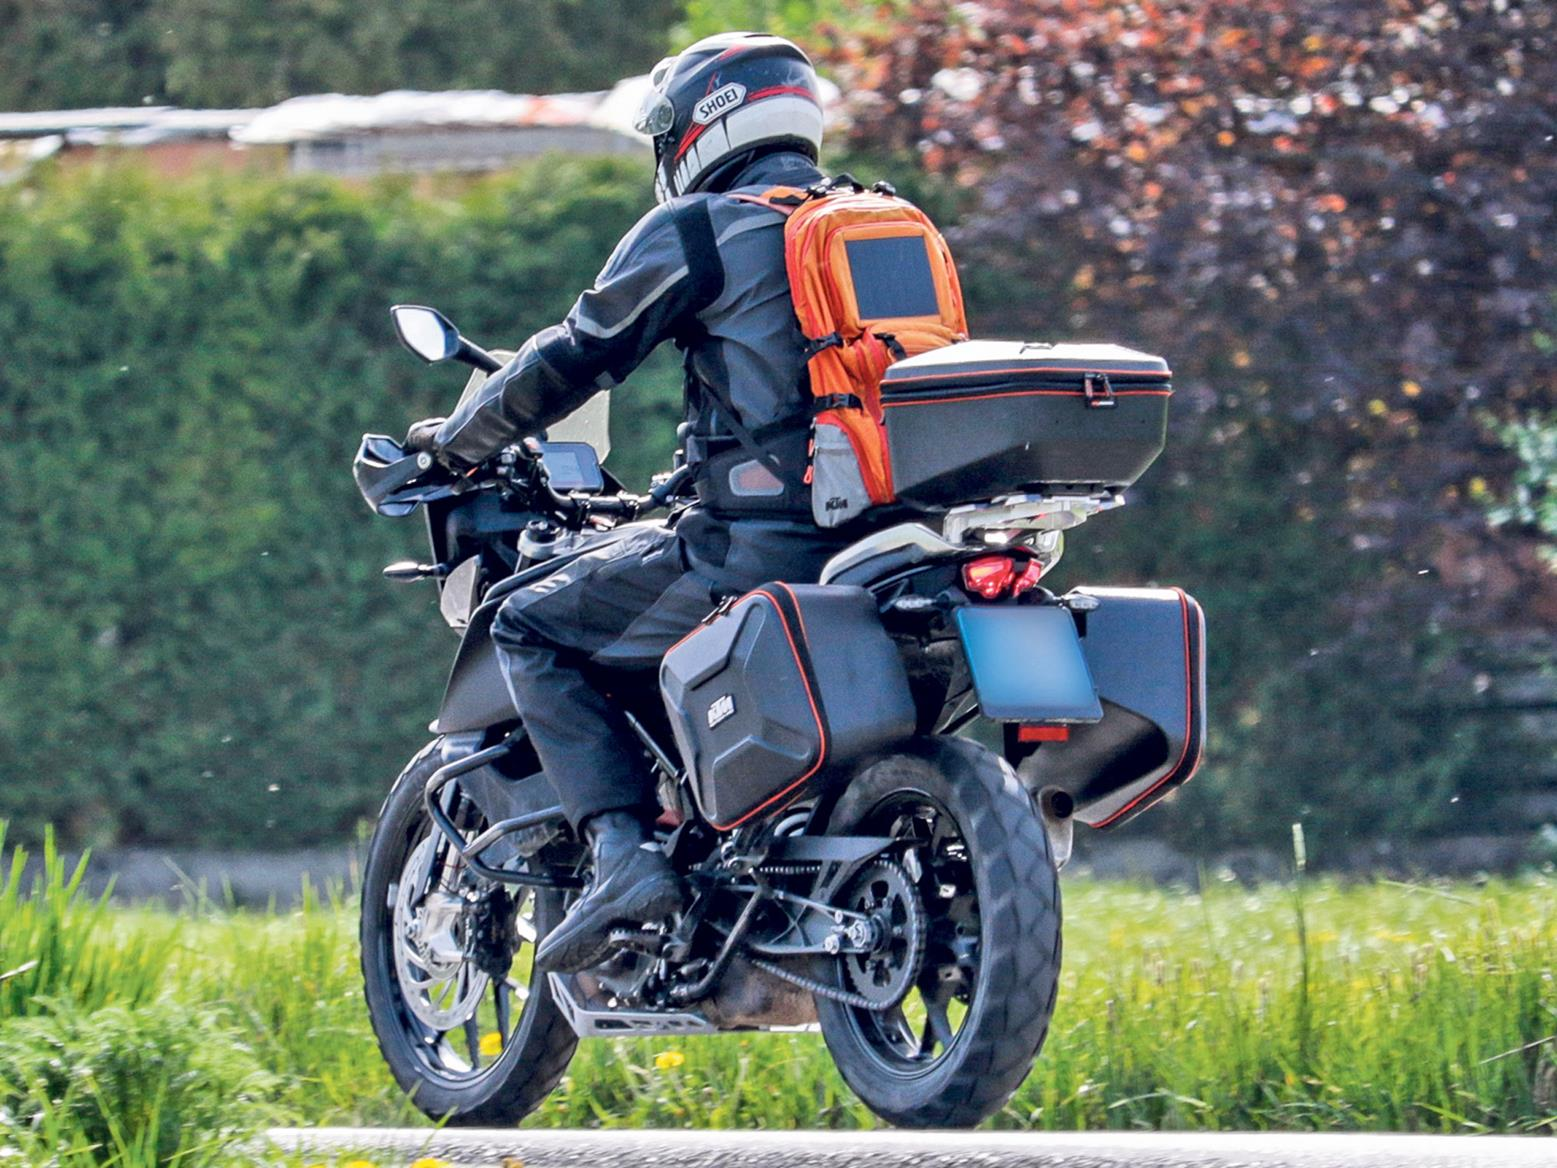 KTM 390 Adventure spied in testing